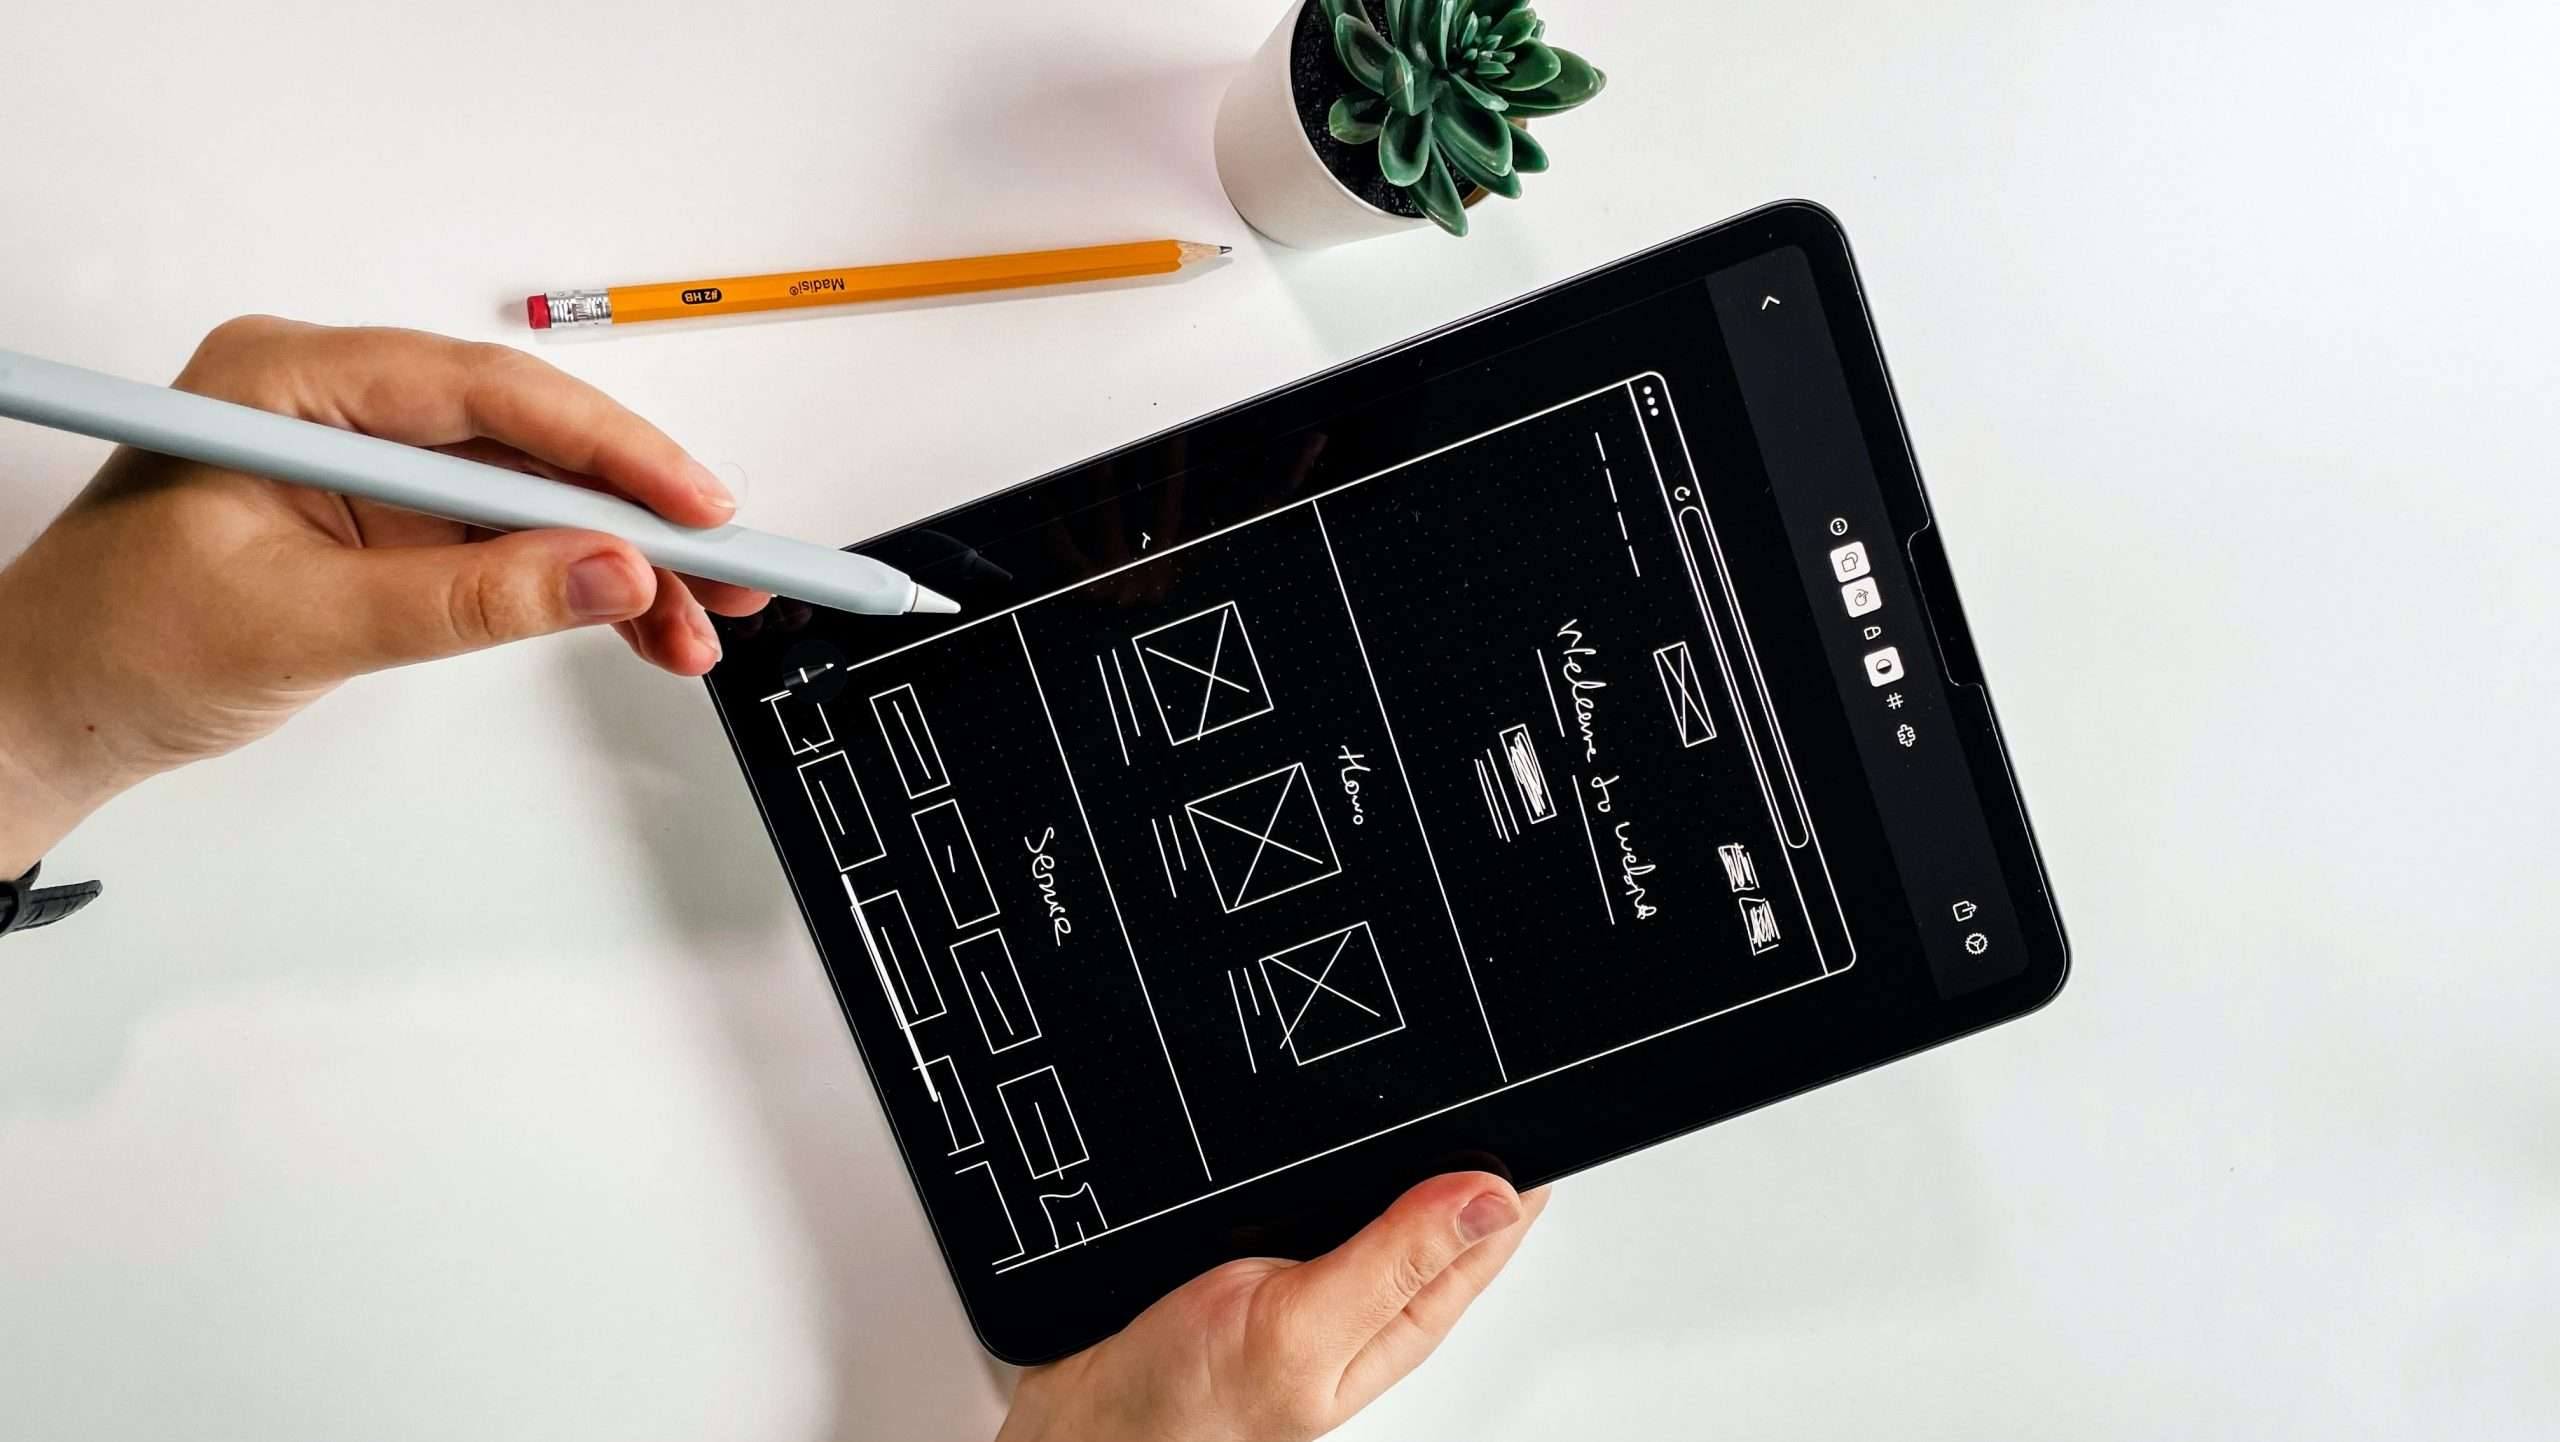 A hand is drawing wireframes in a tablet.